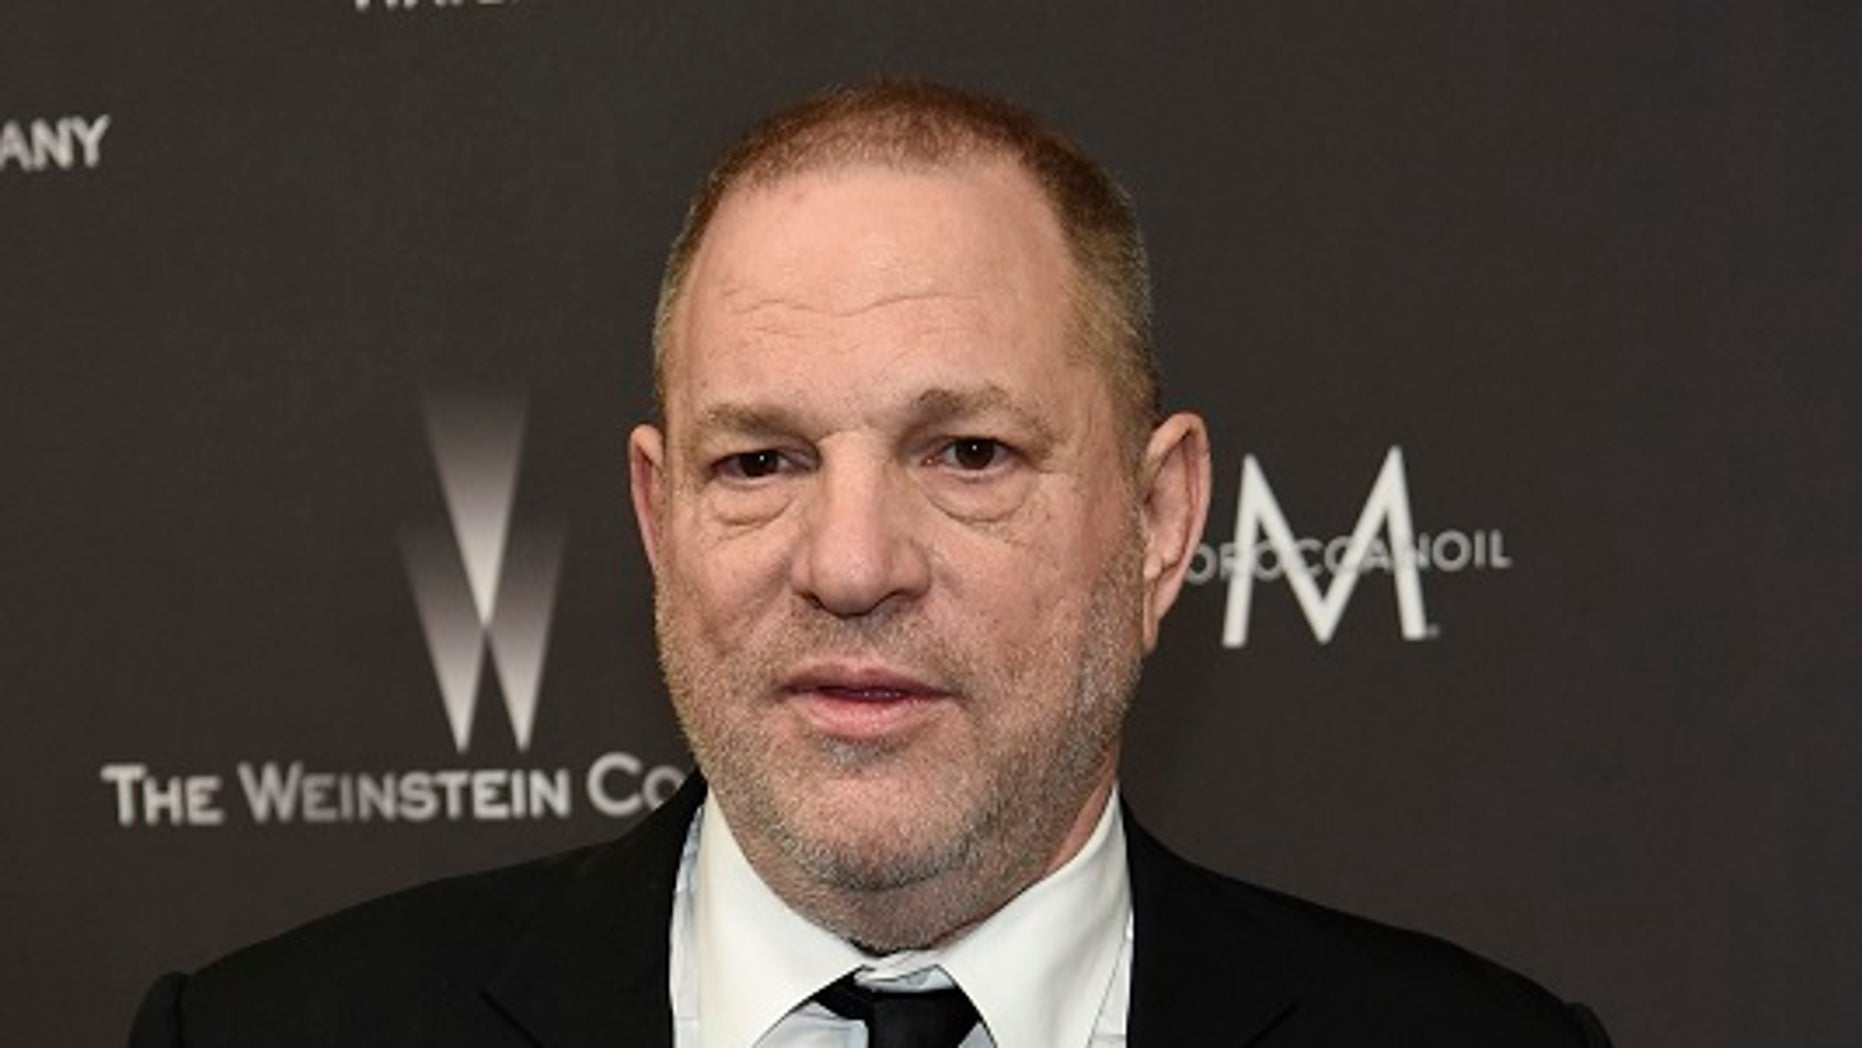 Disgraced Hollywood producer Harvey Weinstein has been again accused of sexual assault.